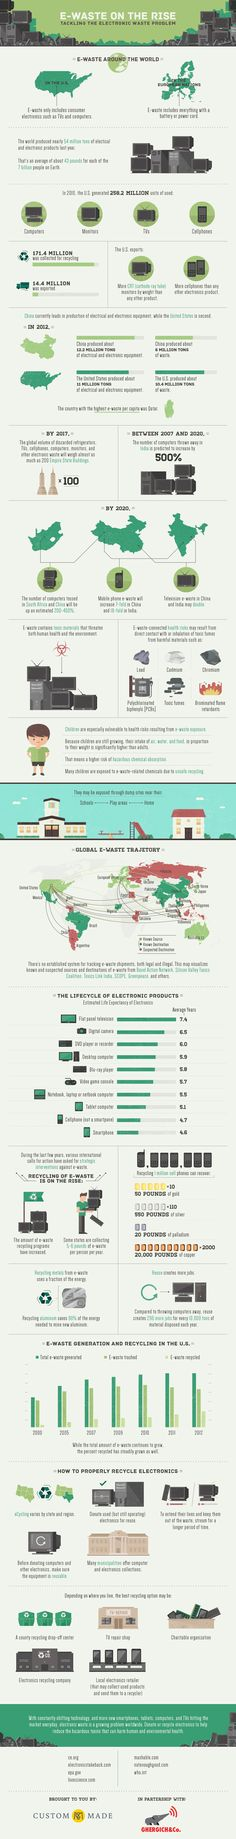 E-waste on the Rise Infographic - http://www.custommade.com/blog/e-waste/